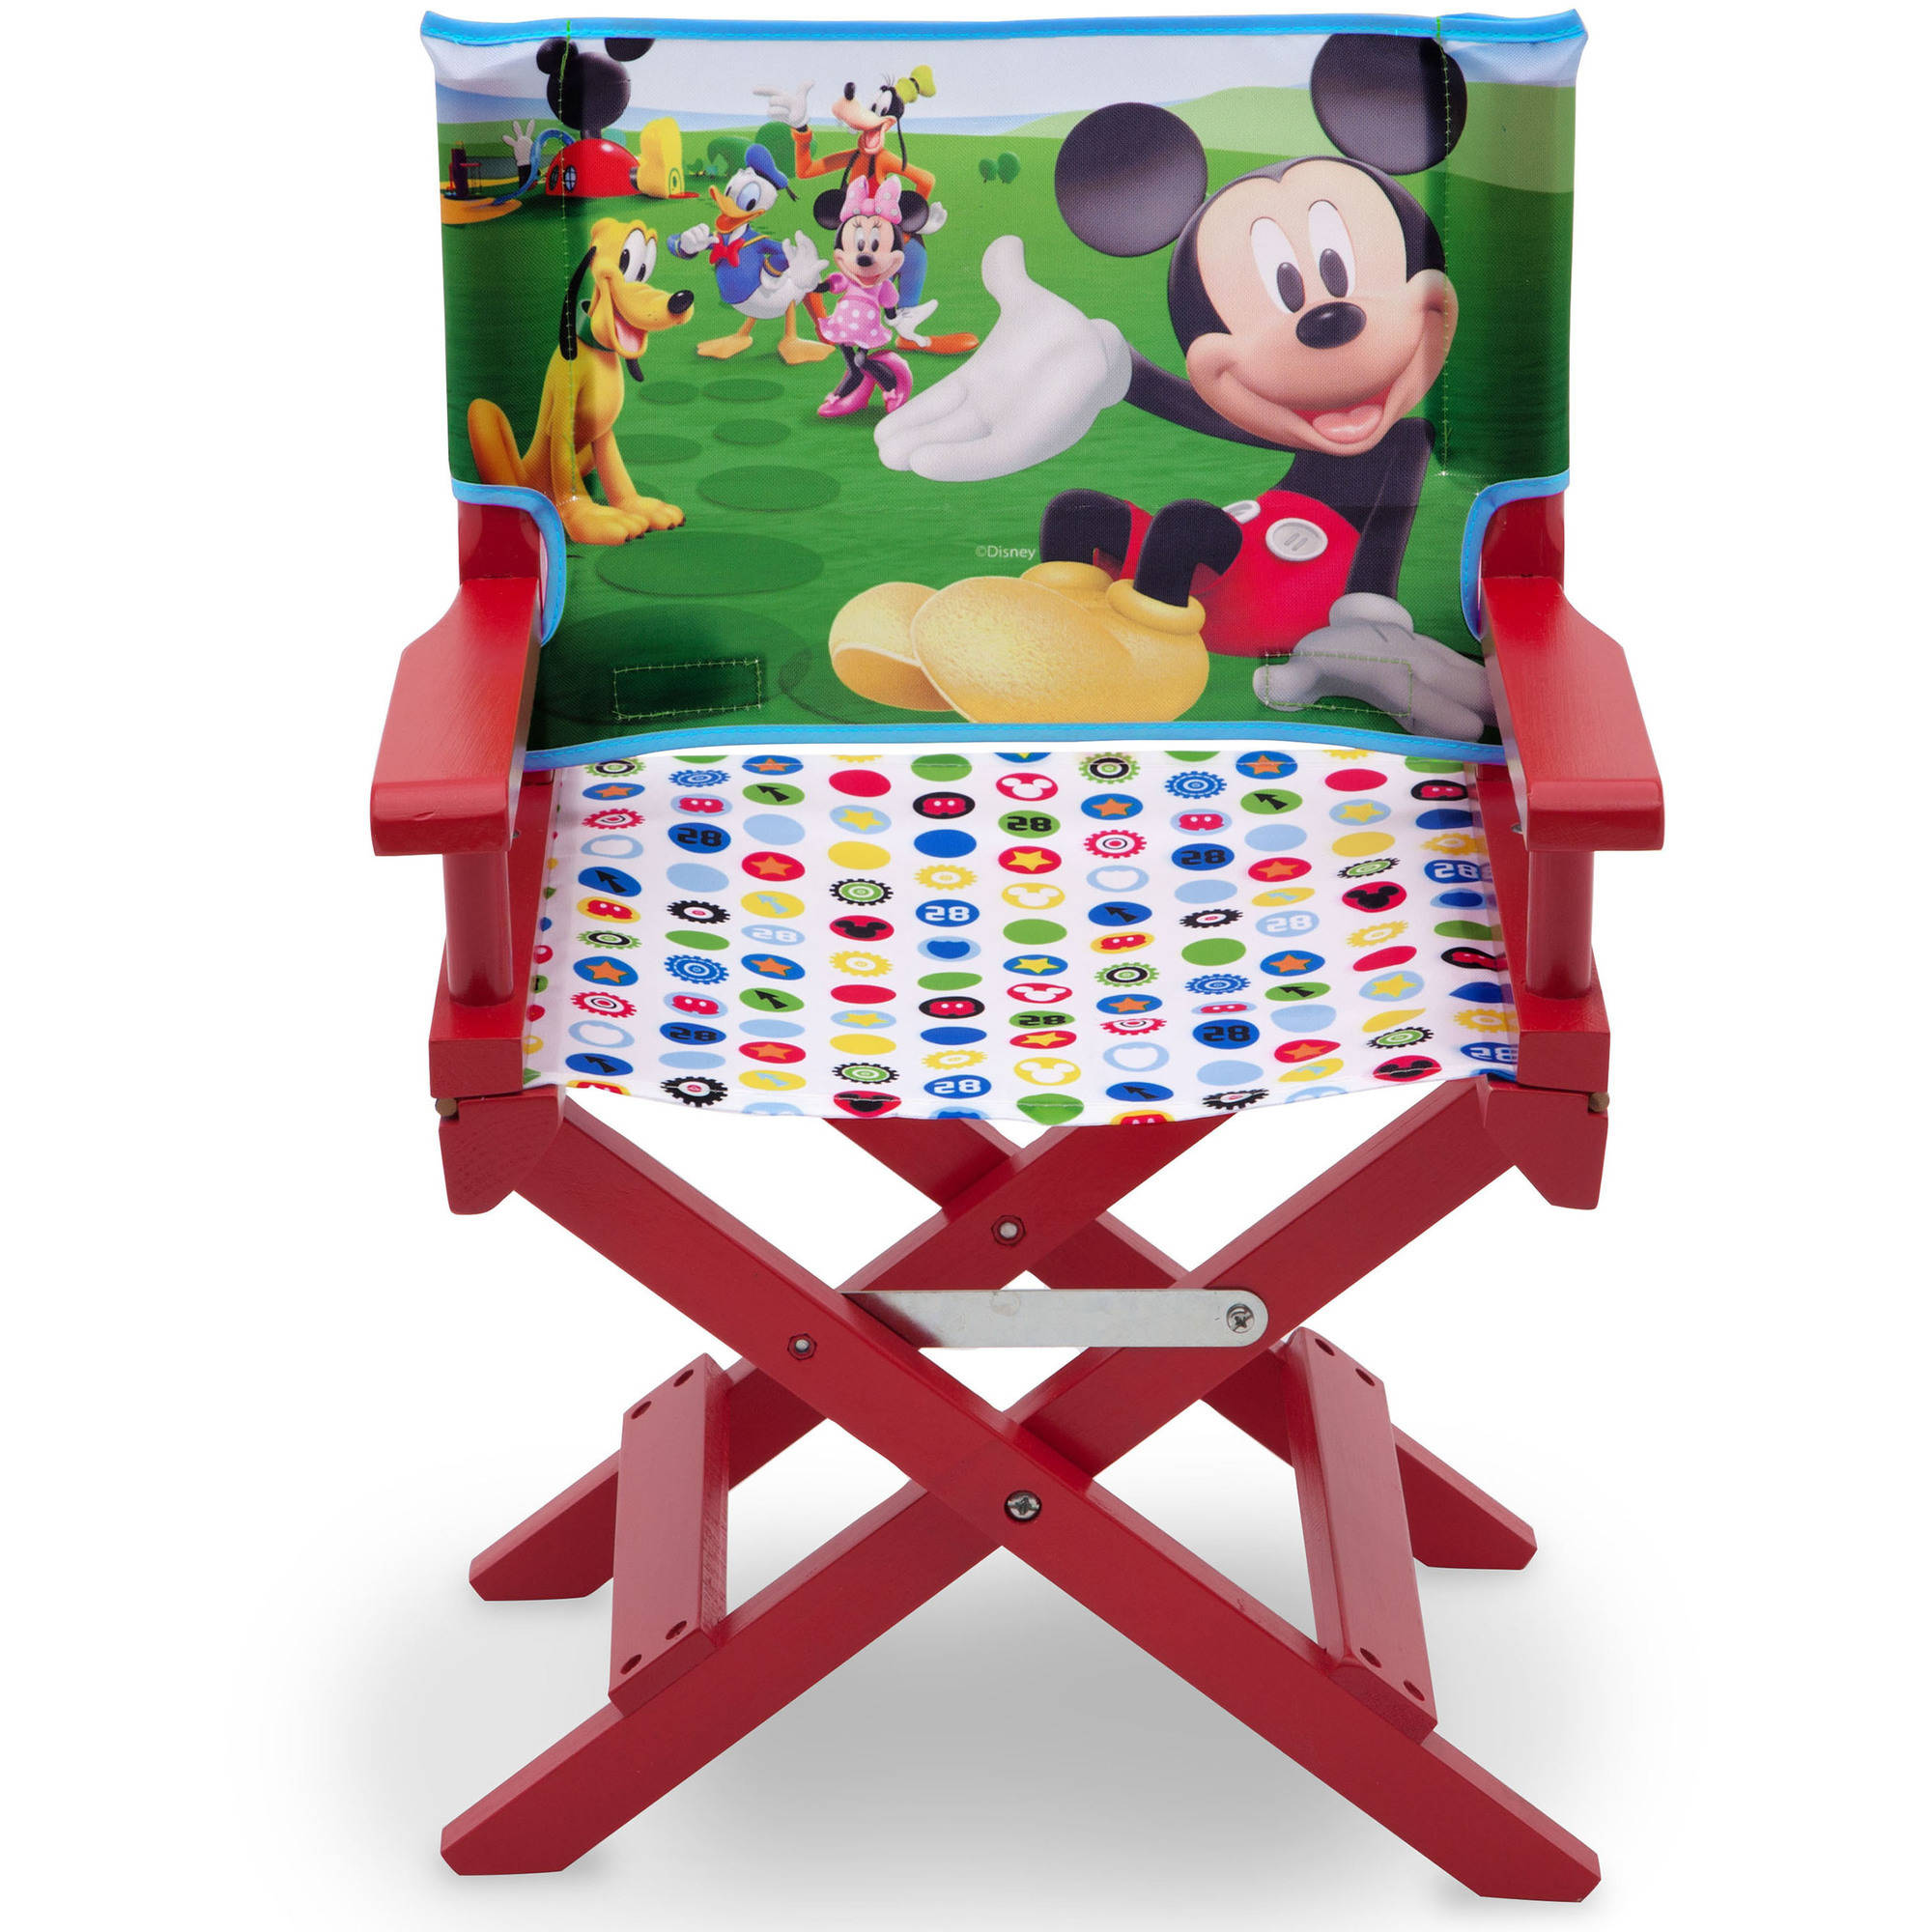 Disney Mickey Mouse Director's Chair